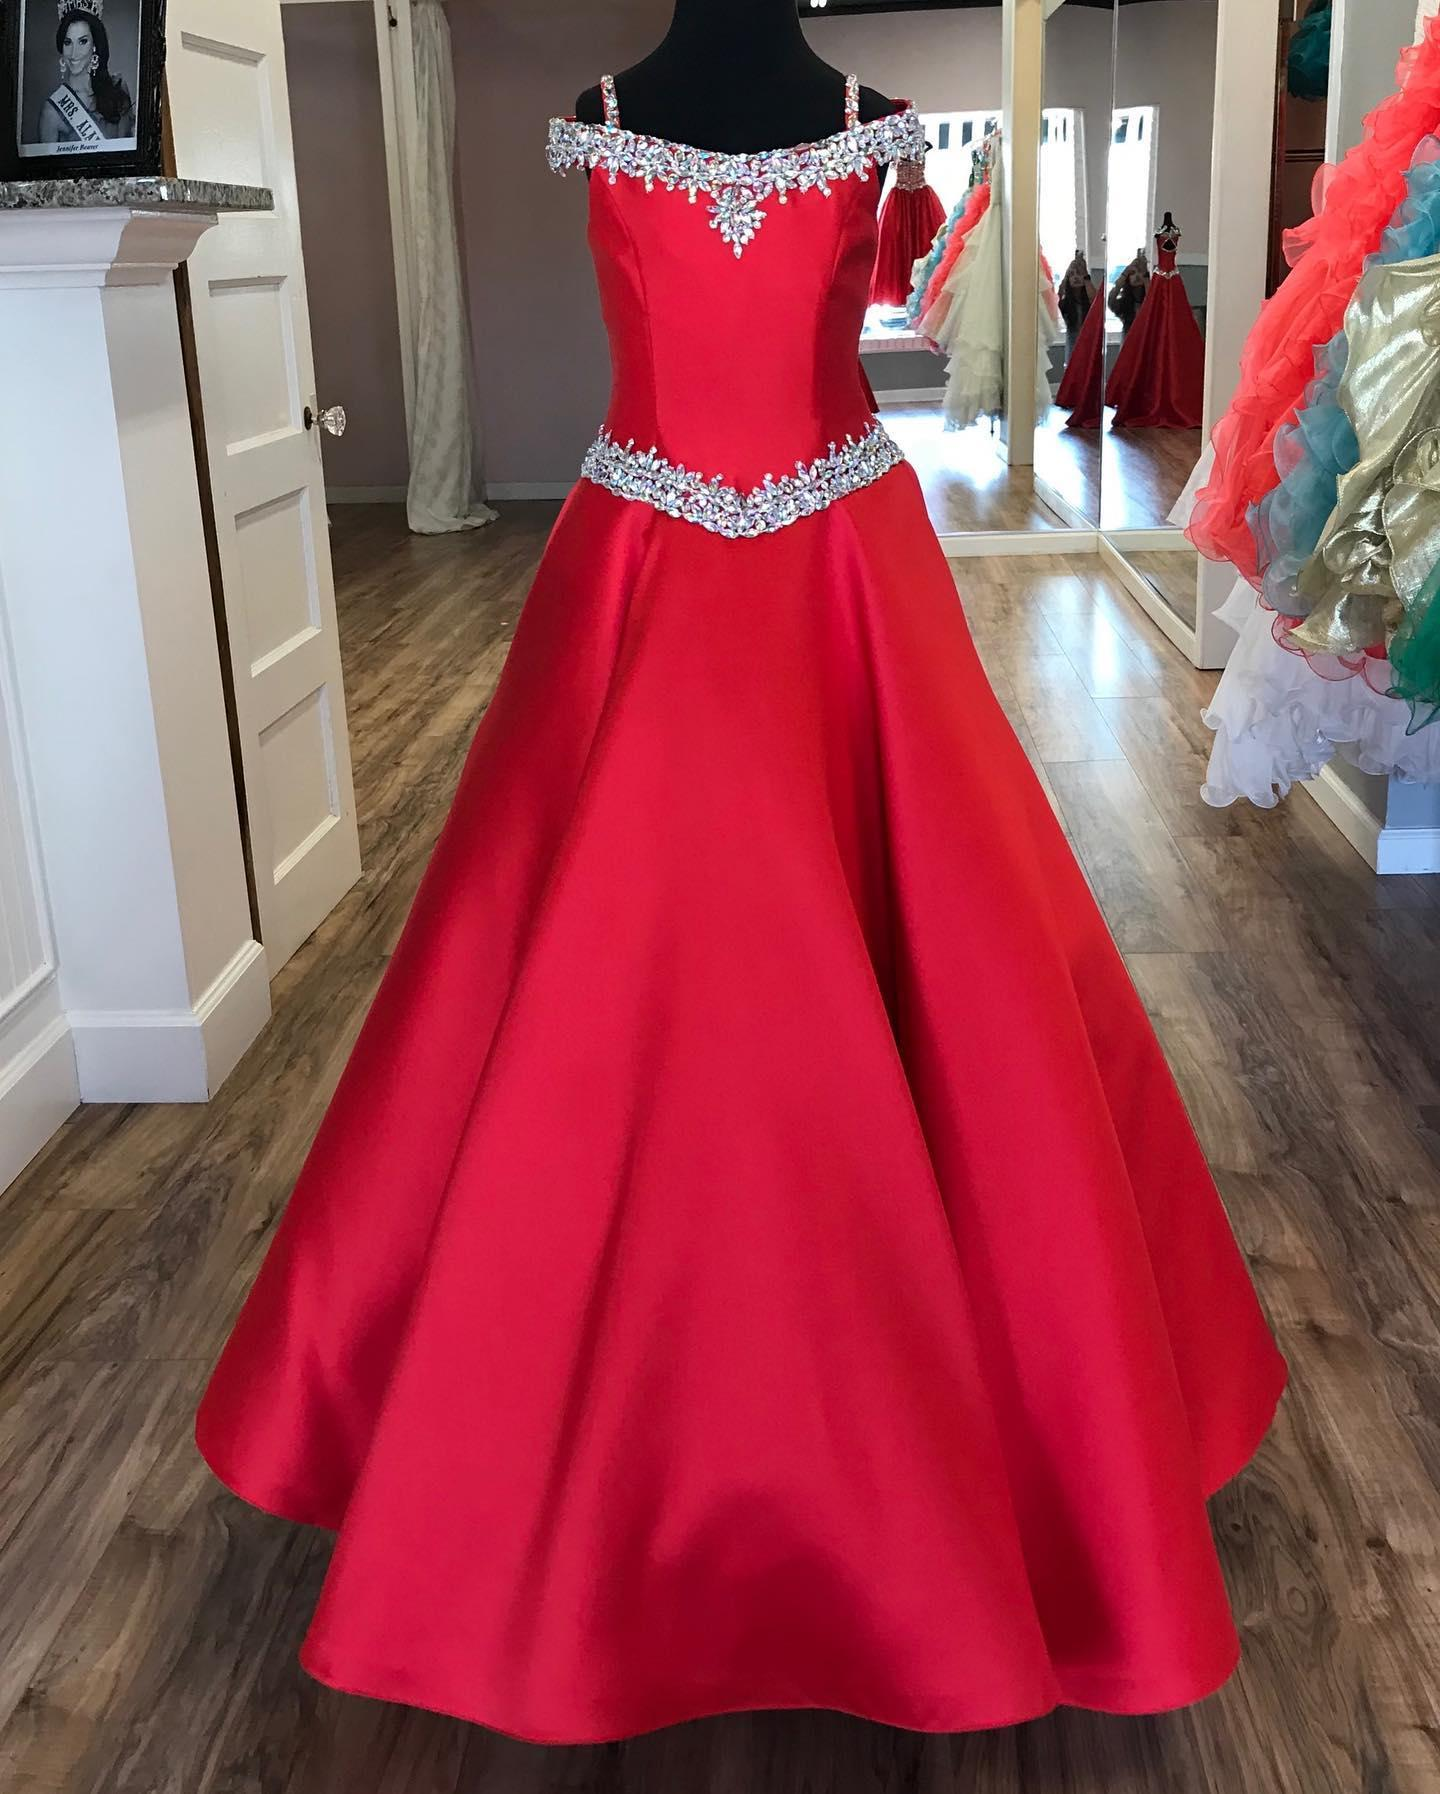 Little Flower Gdress per adolescenti Juniors Toddlers 2021 Bordare AB Pietre Crystal Long Pageant Gown for Girl Formal Party